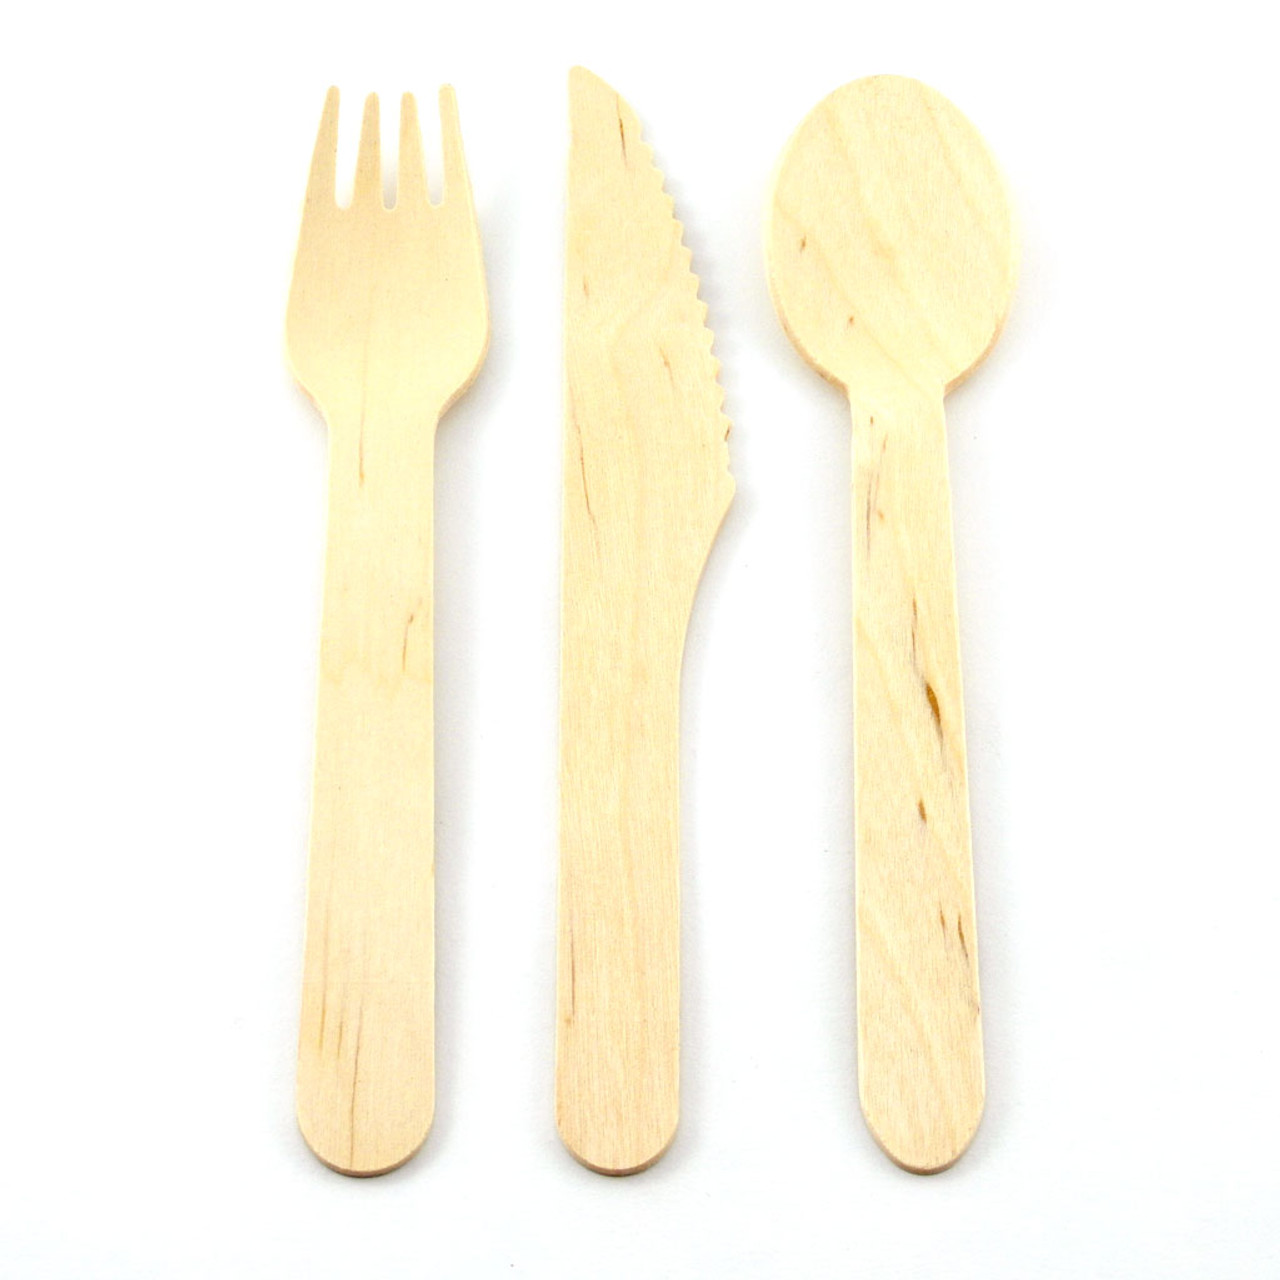 Disposable Wooden Cutlery